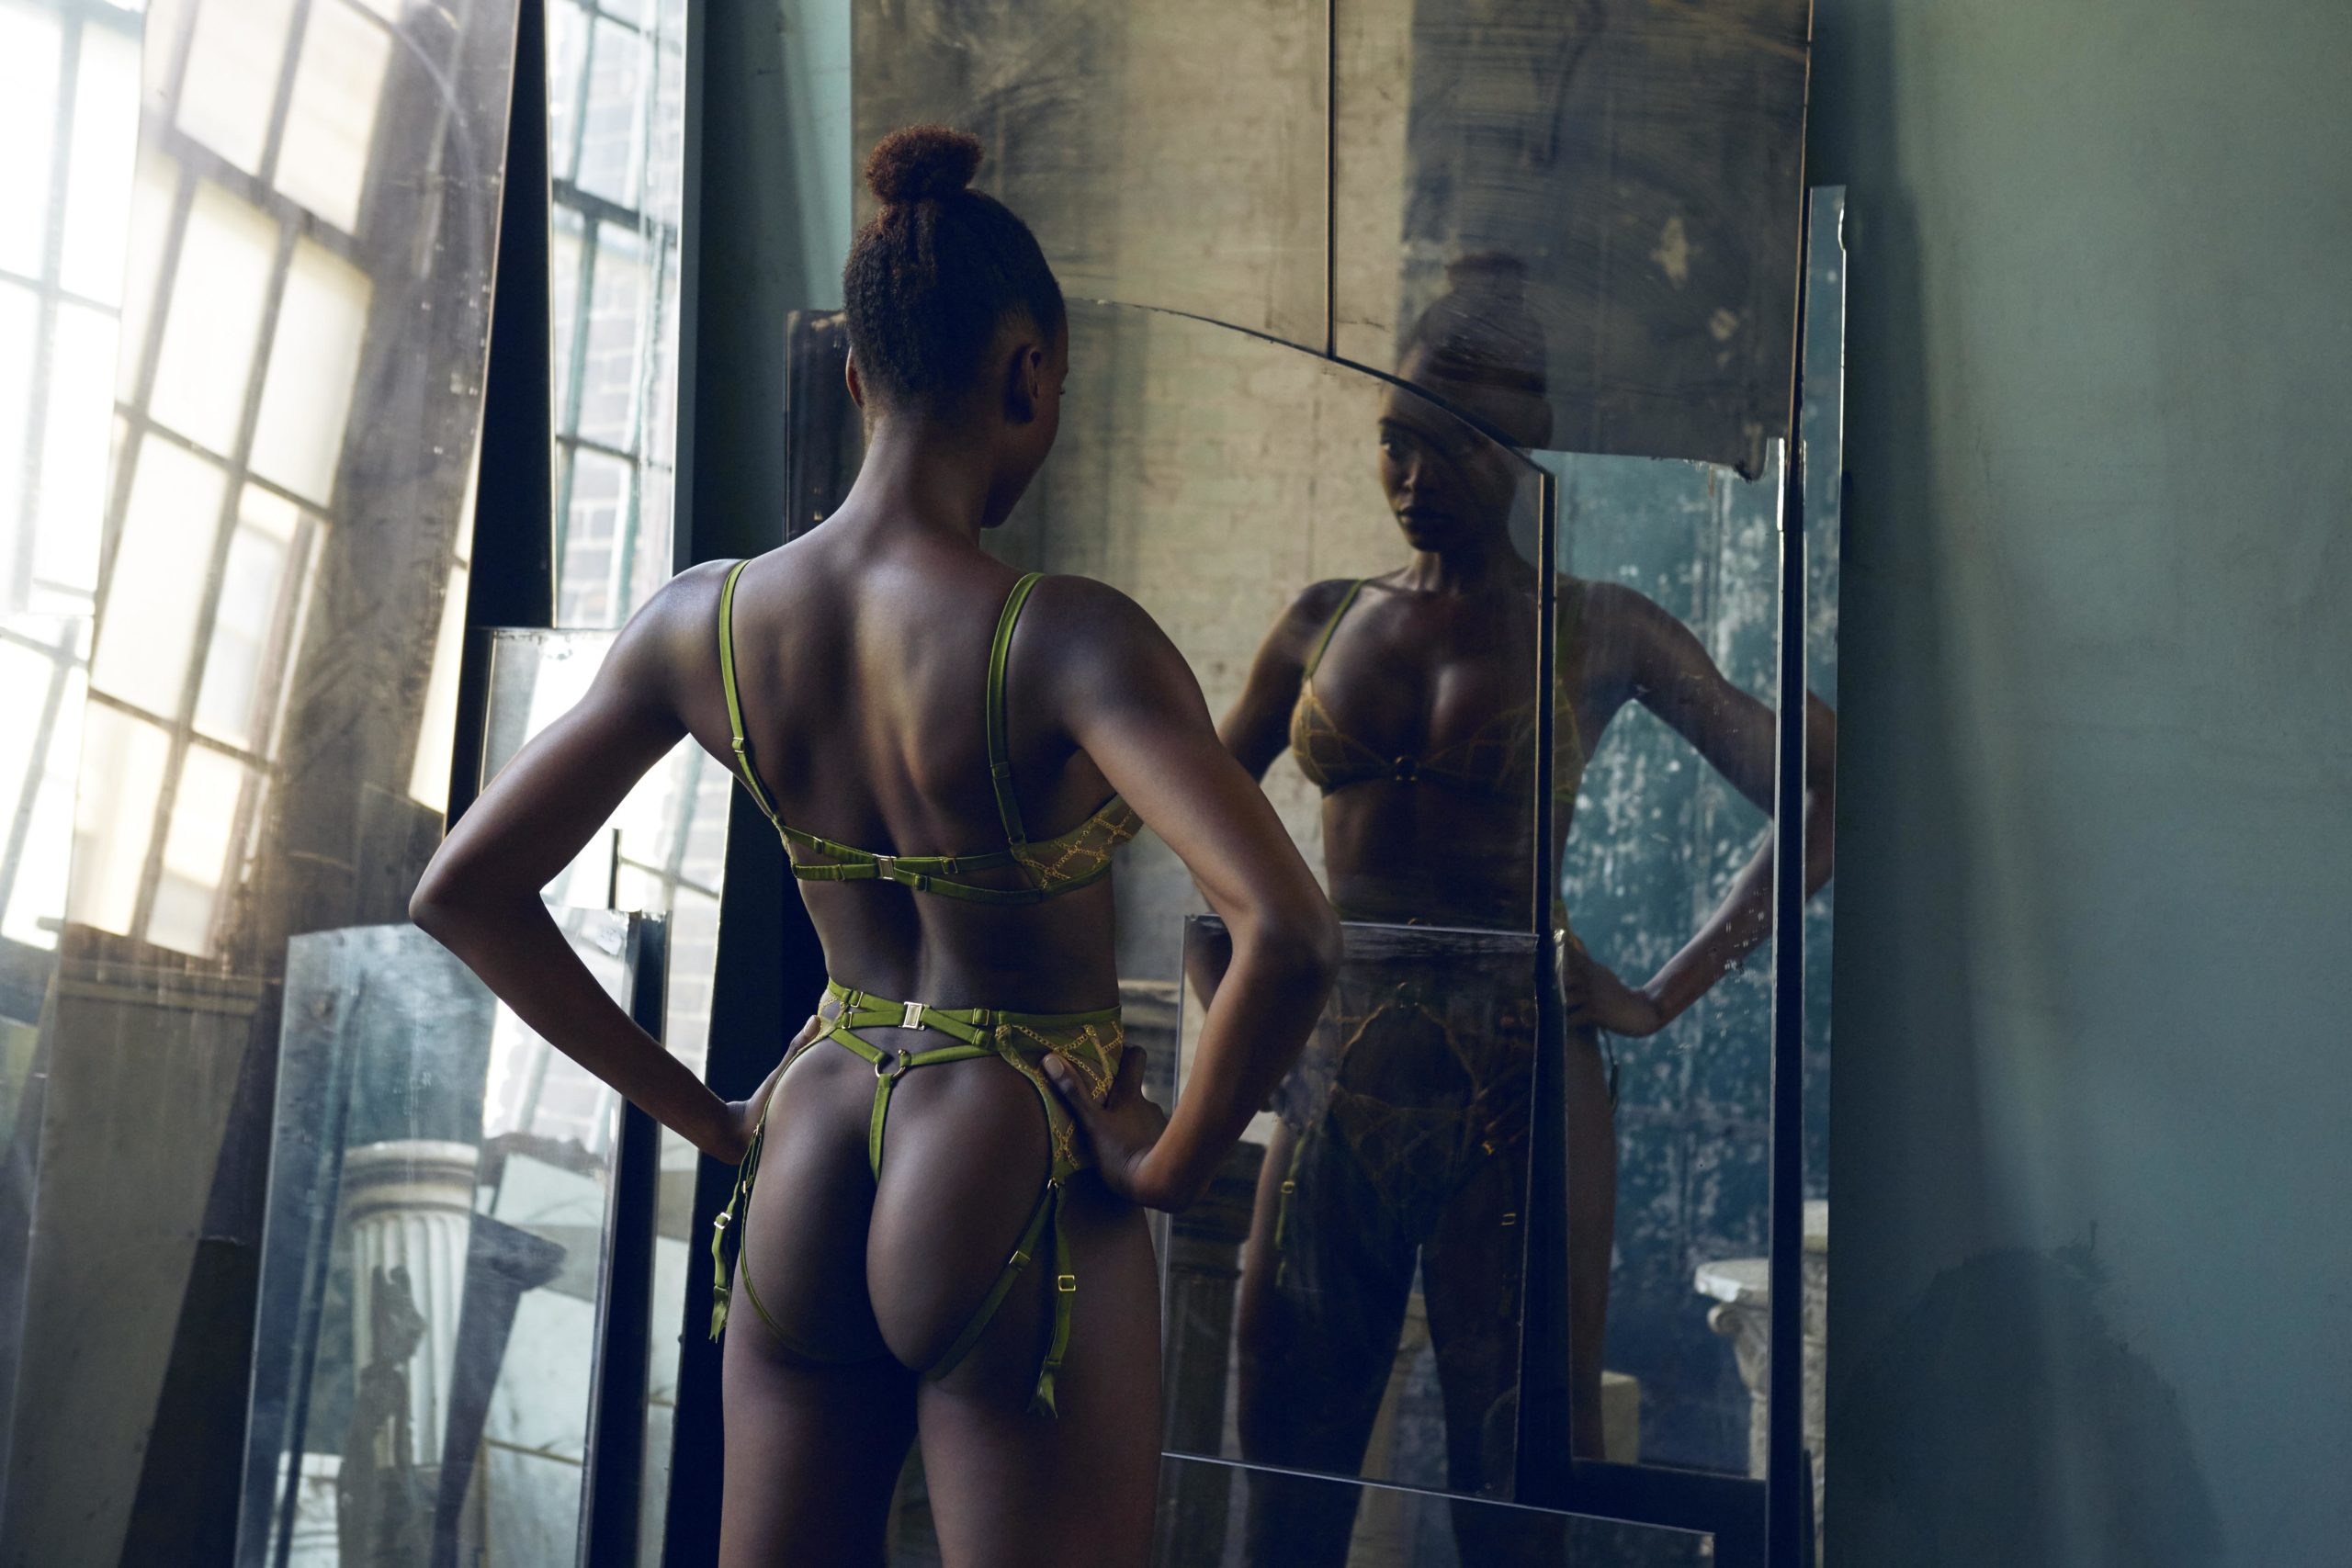 Studio Pia for Journelle Lingerie Campaign featuring model Nneoma Anosike I Greg Sorensen I Fashion & Beauty Photographer I NYC